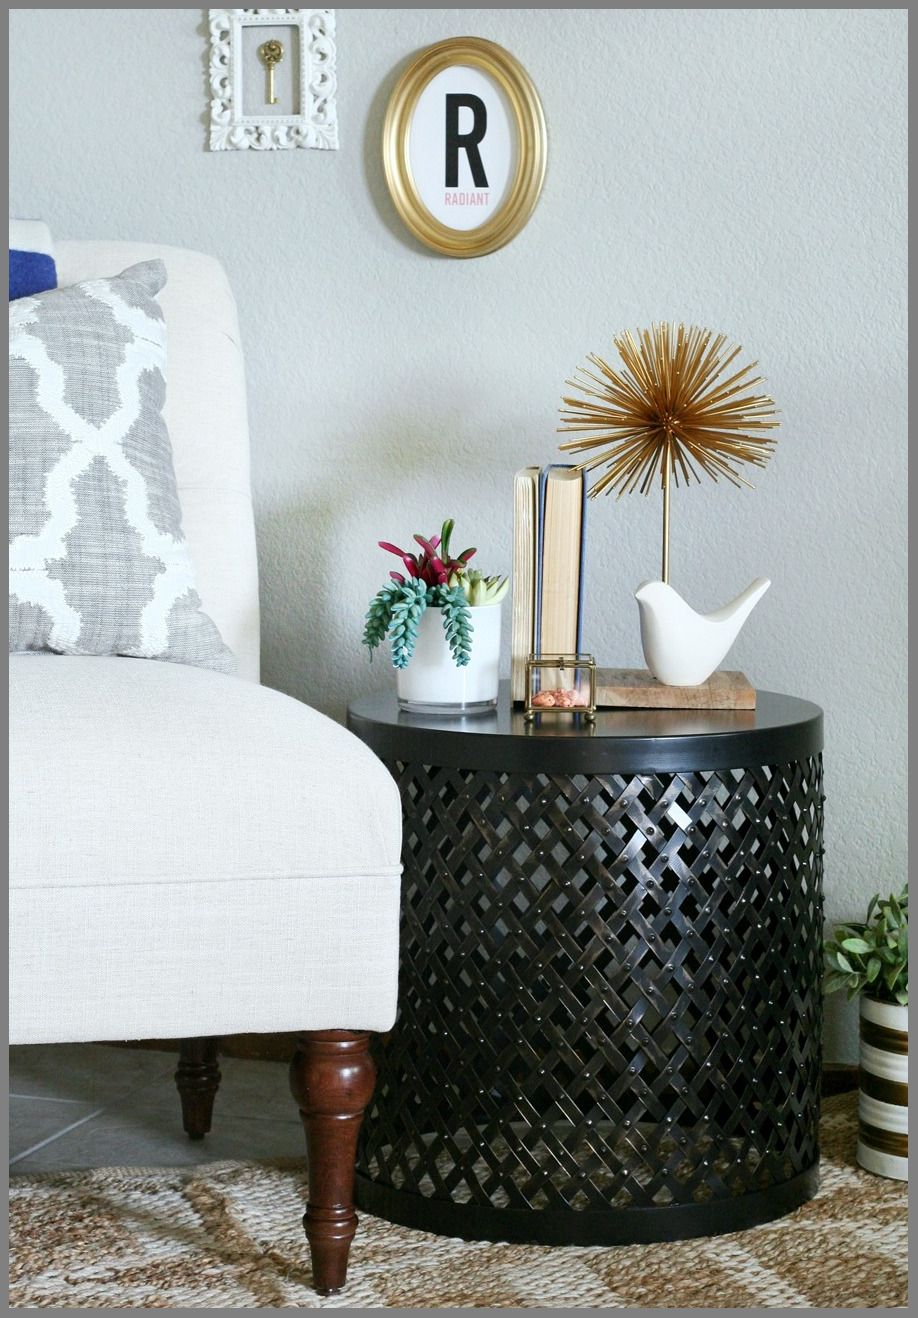 modern decorating round side table tables ideas amazing decorations cool end decors with unique design black decor ethan allen entertainment center craigslist glass silver coffee